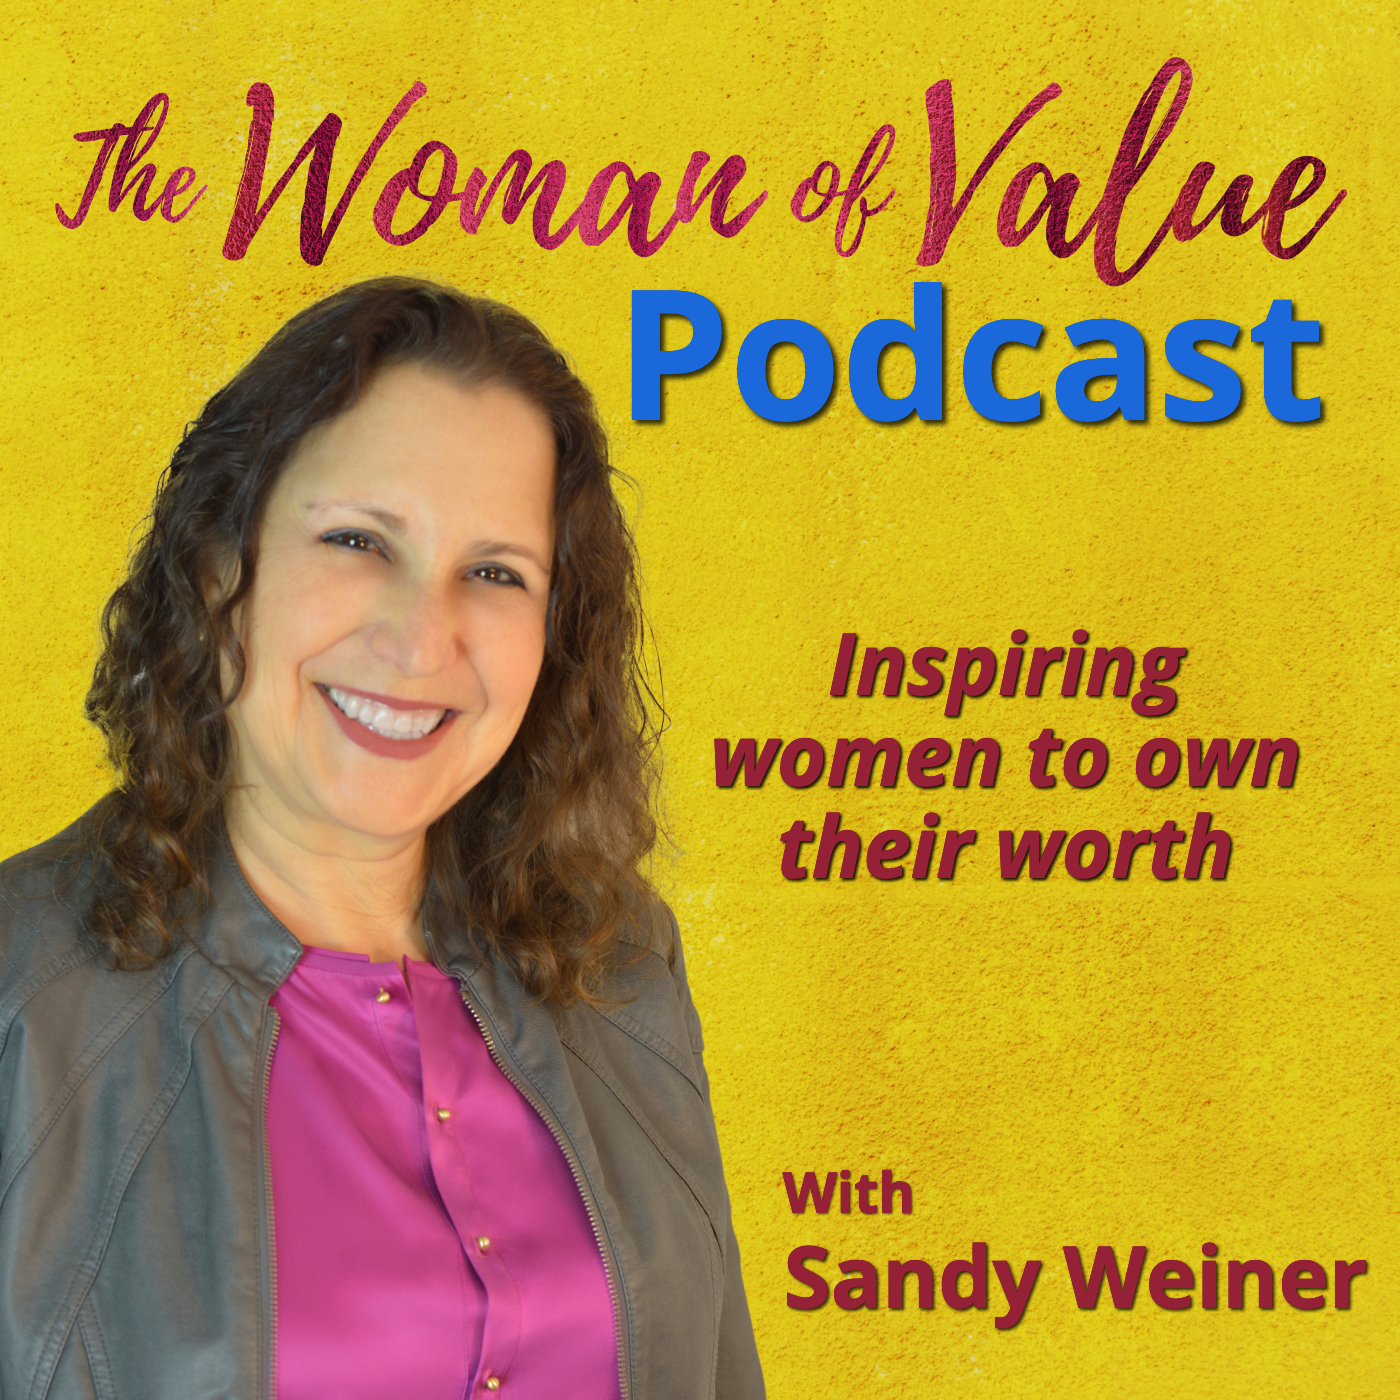 woman of value podcast image